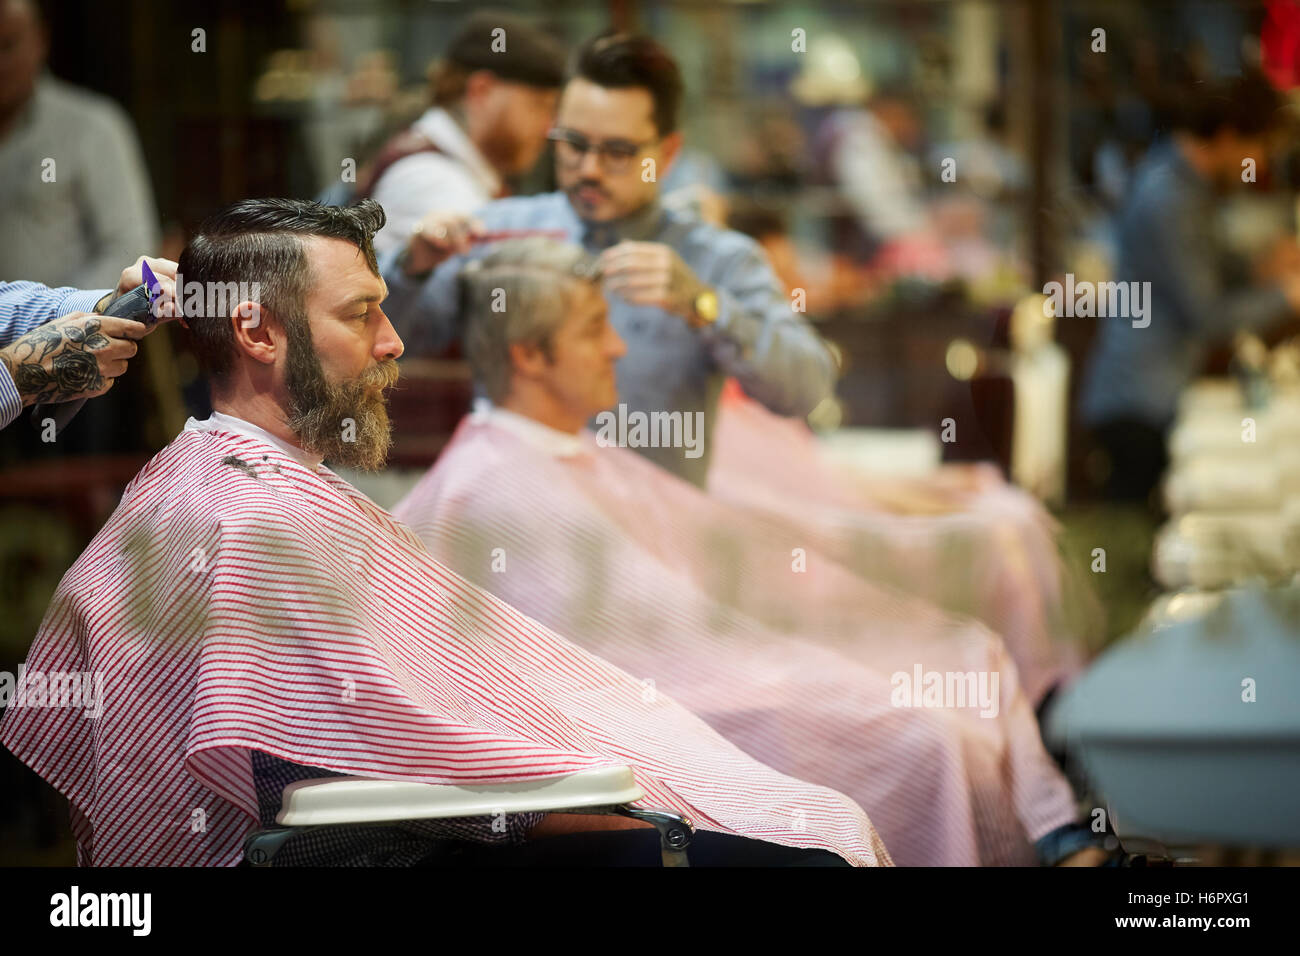 Gents barber hairdresser grooming male   busy street  Shops shopping shopper store retail retailer retail retailers - Stock Image